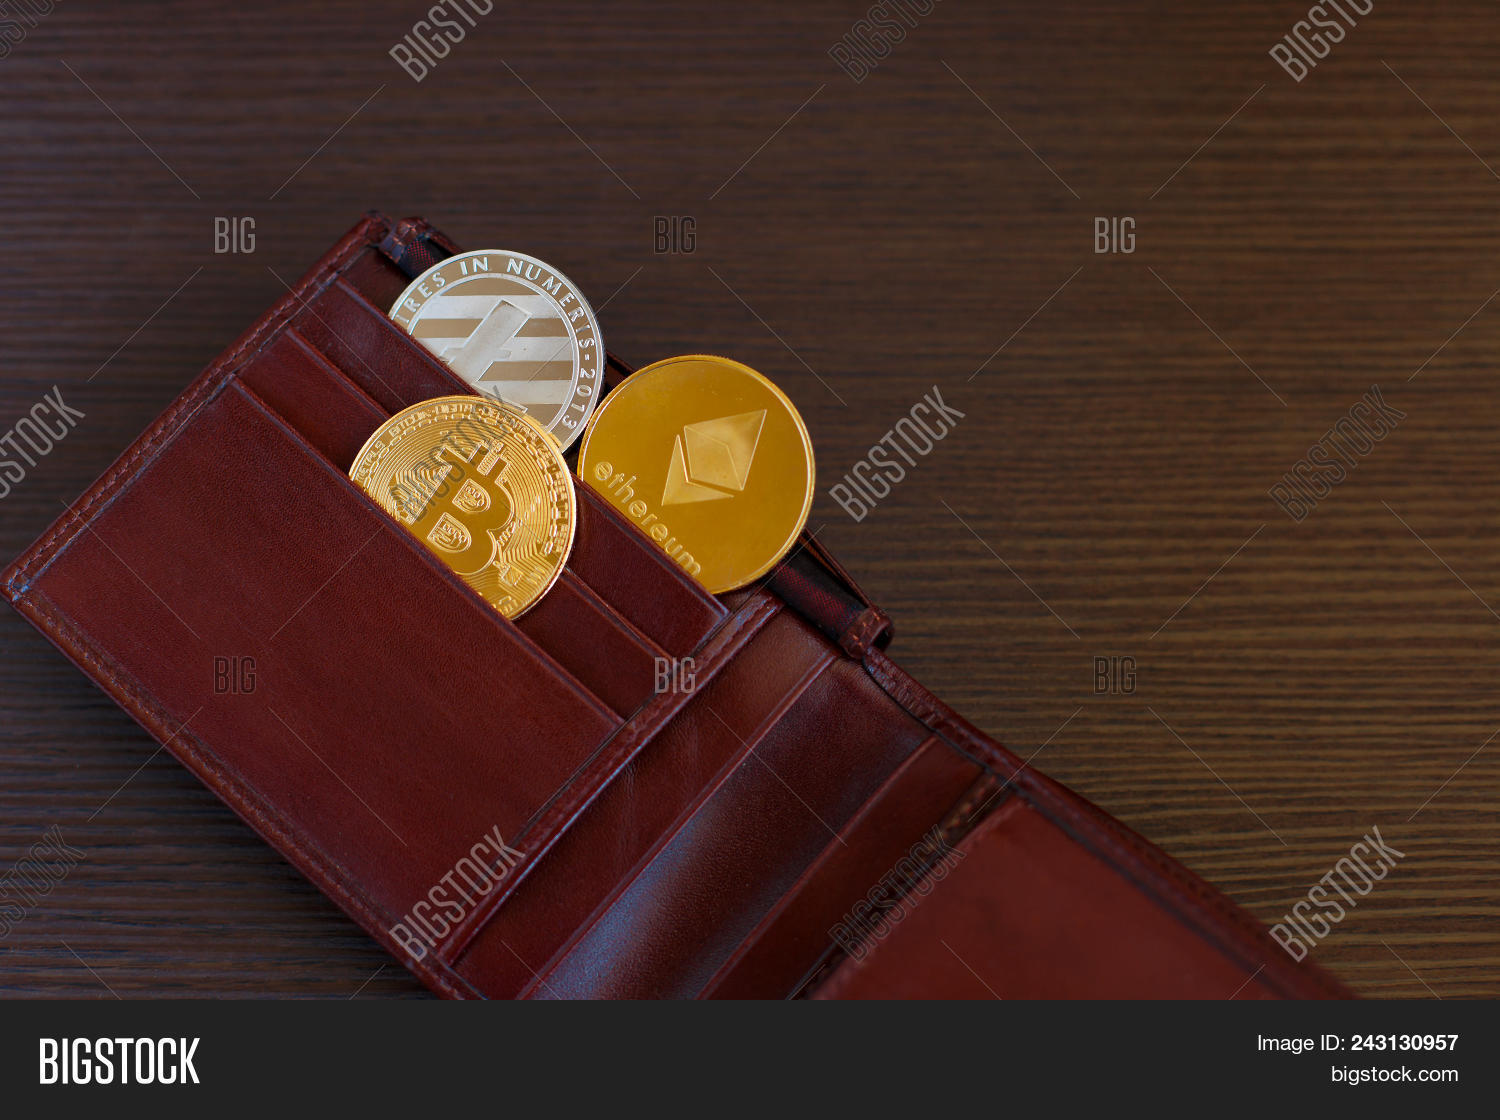 Crypto Currency Coin Image & Photo (Free Trial) | Bigstock